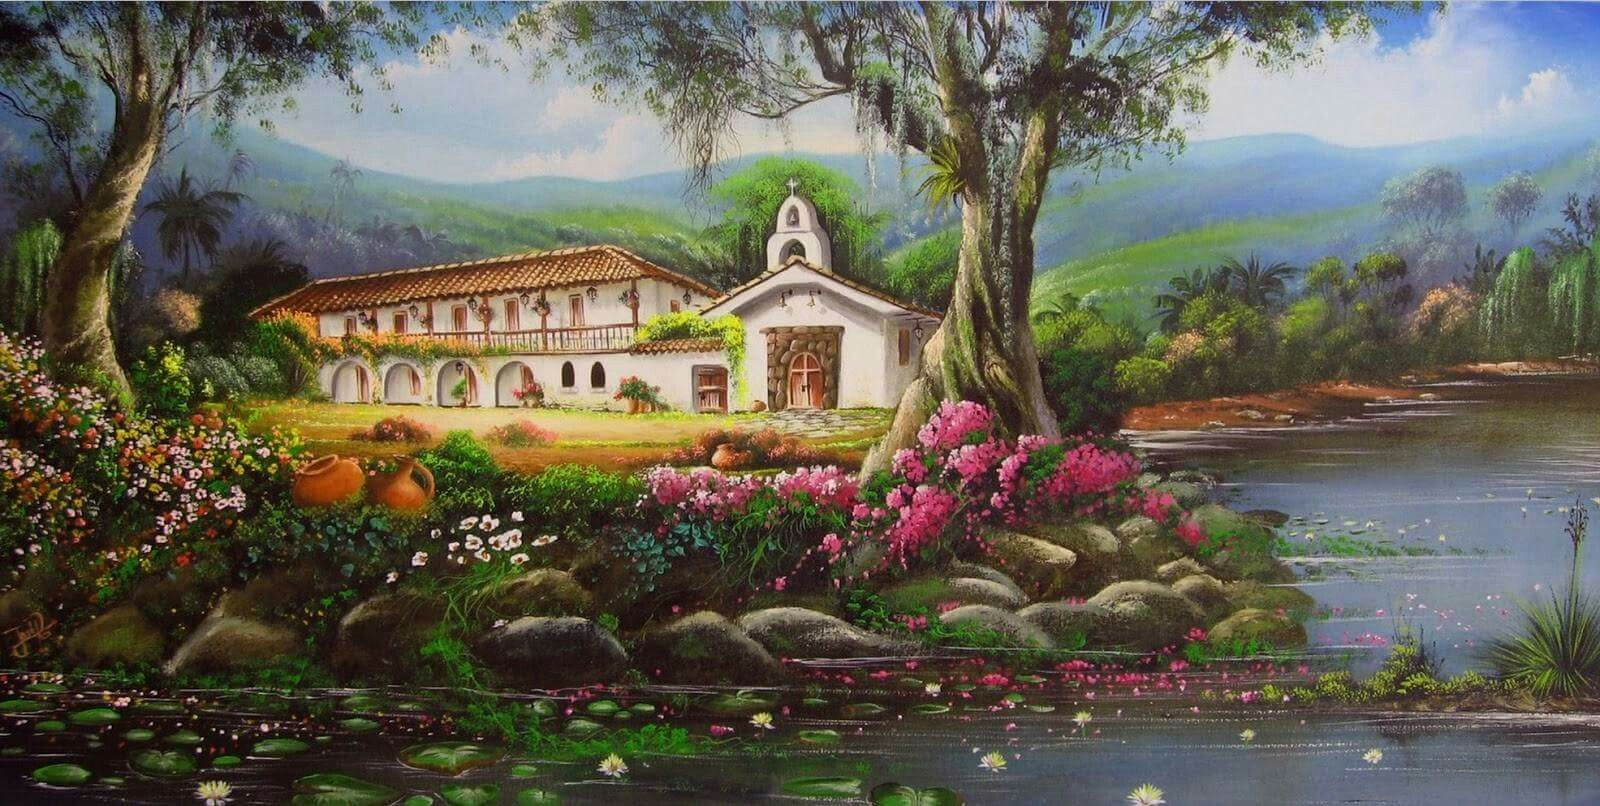 Pintor colombiano paisajes para bordar pinterest for Pintor y muralista colombiano